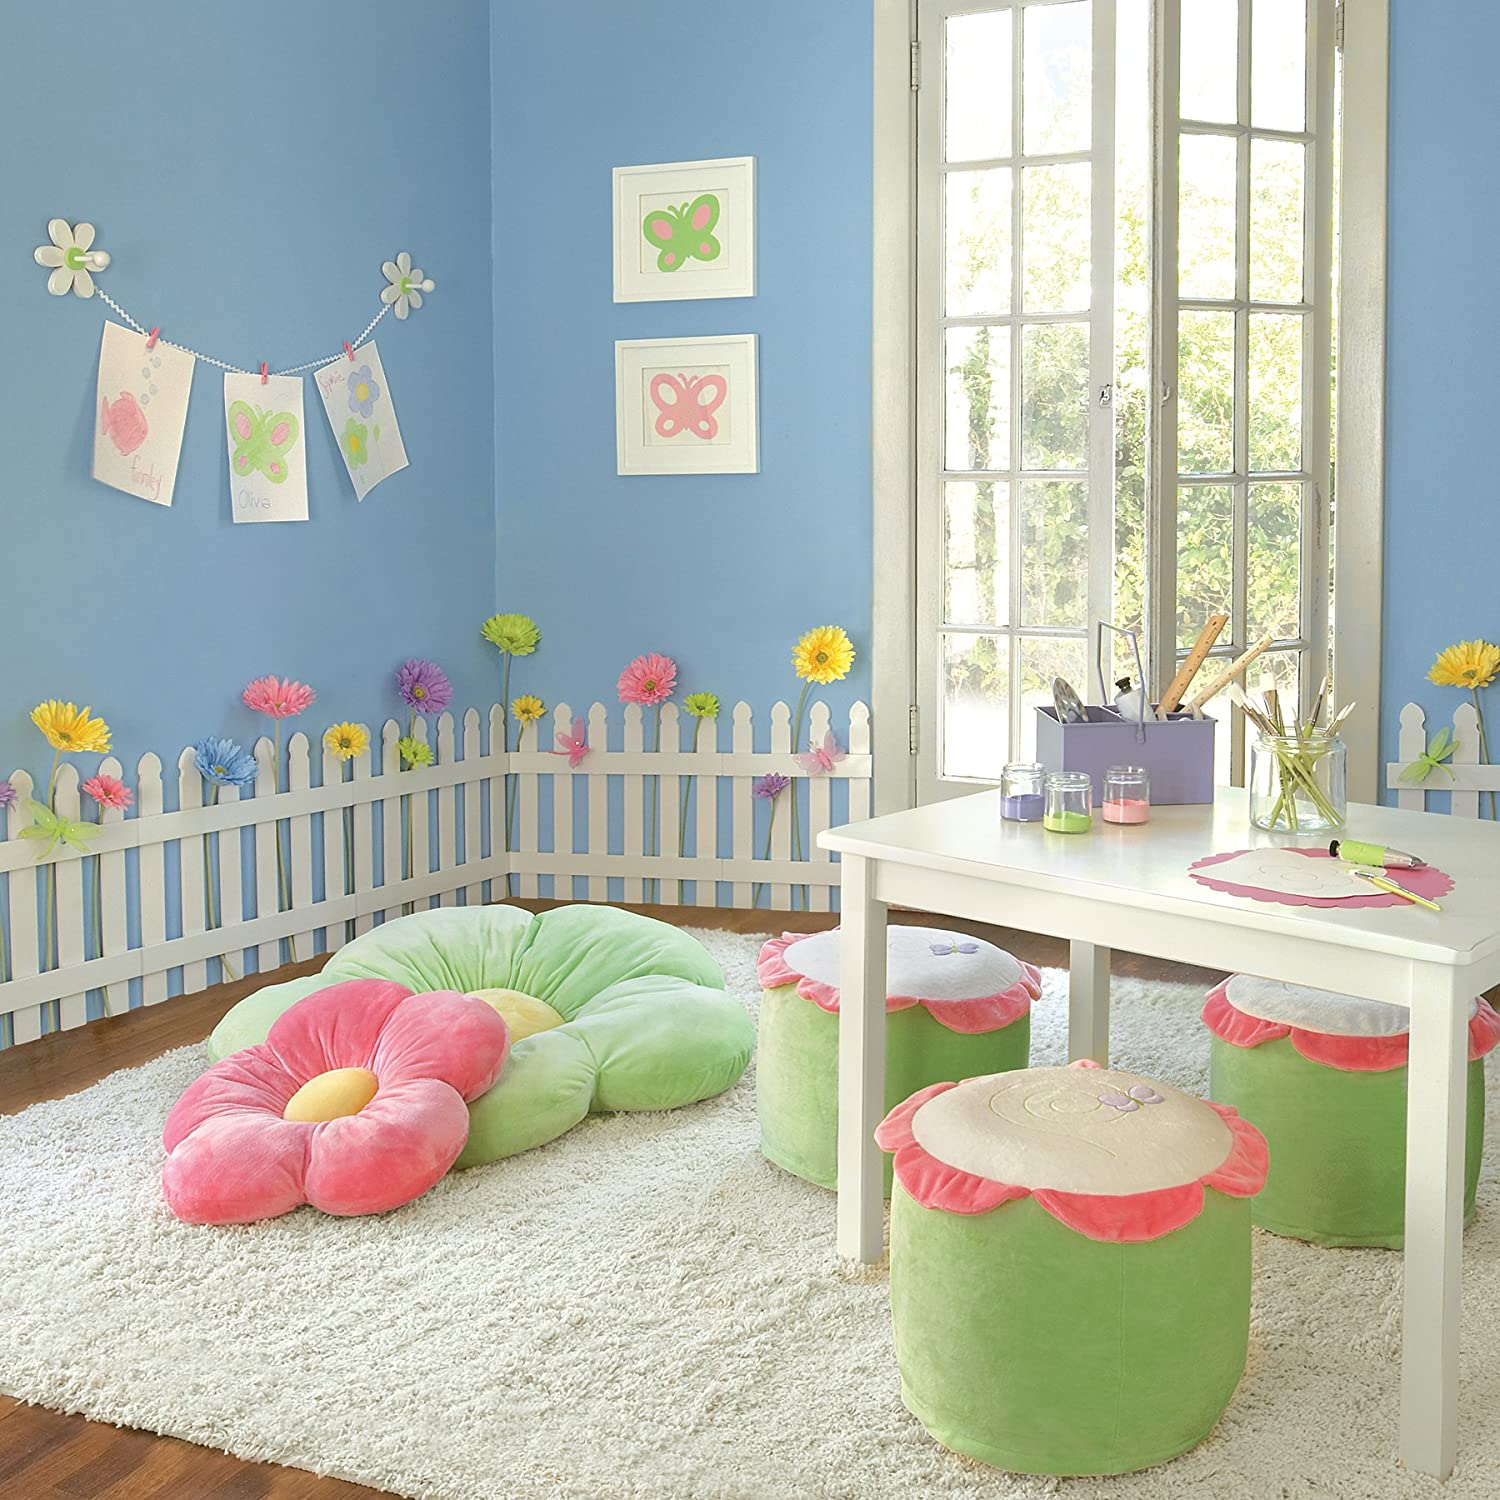 Kids Room Wall Ideas: White Wooden Picket Fences For Kids Room Wall Border